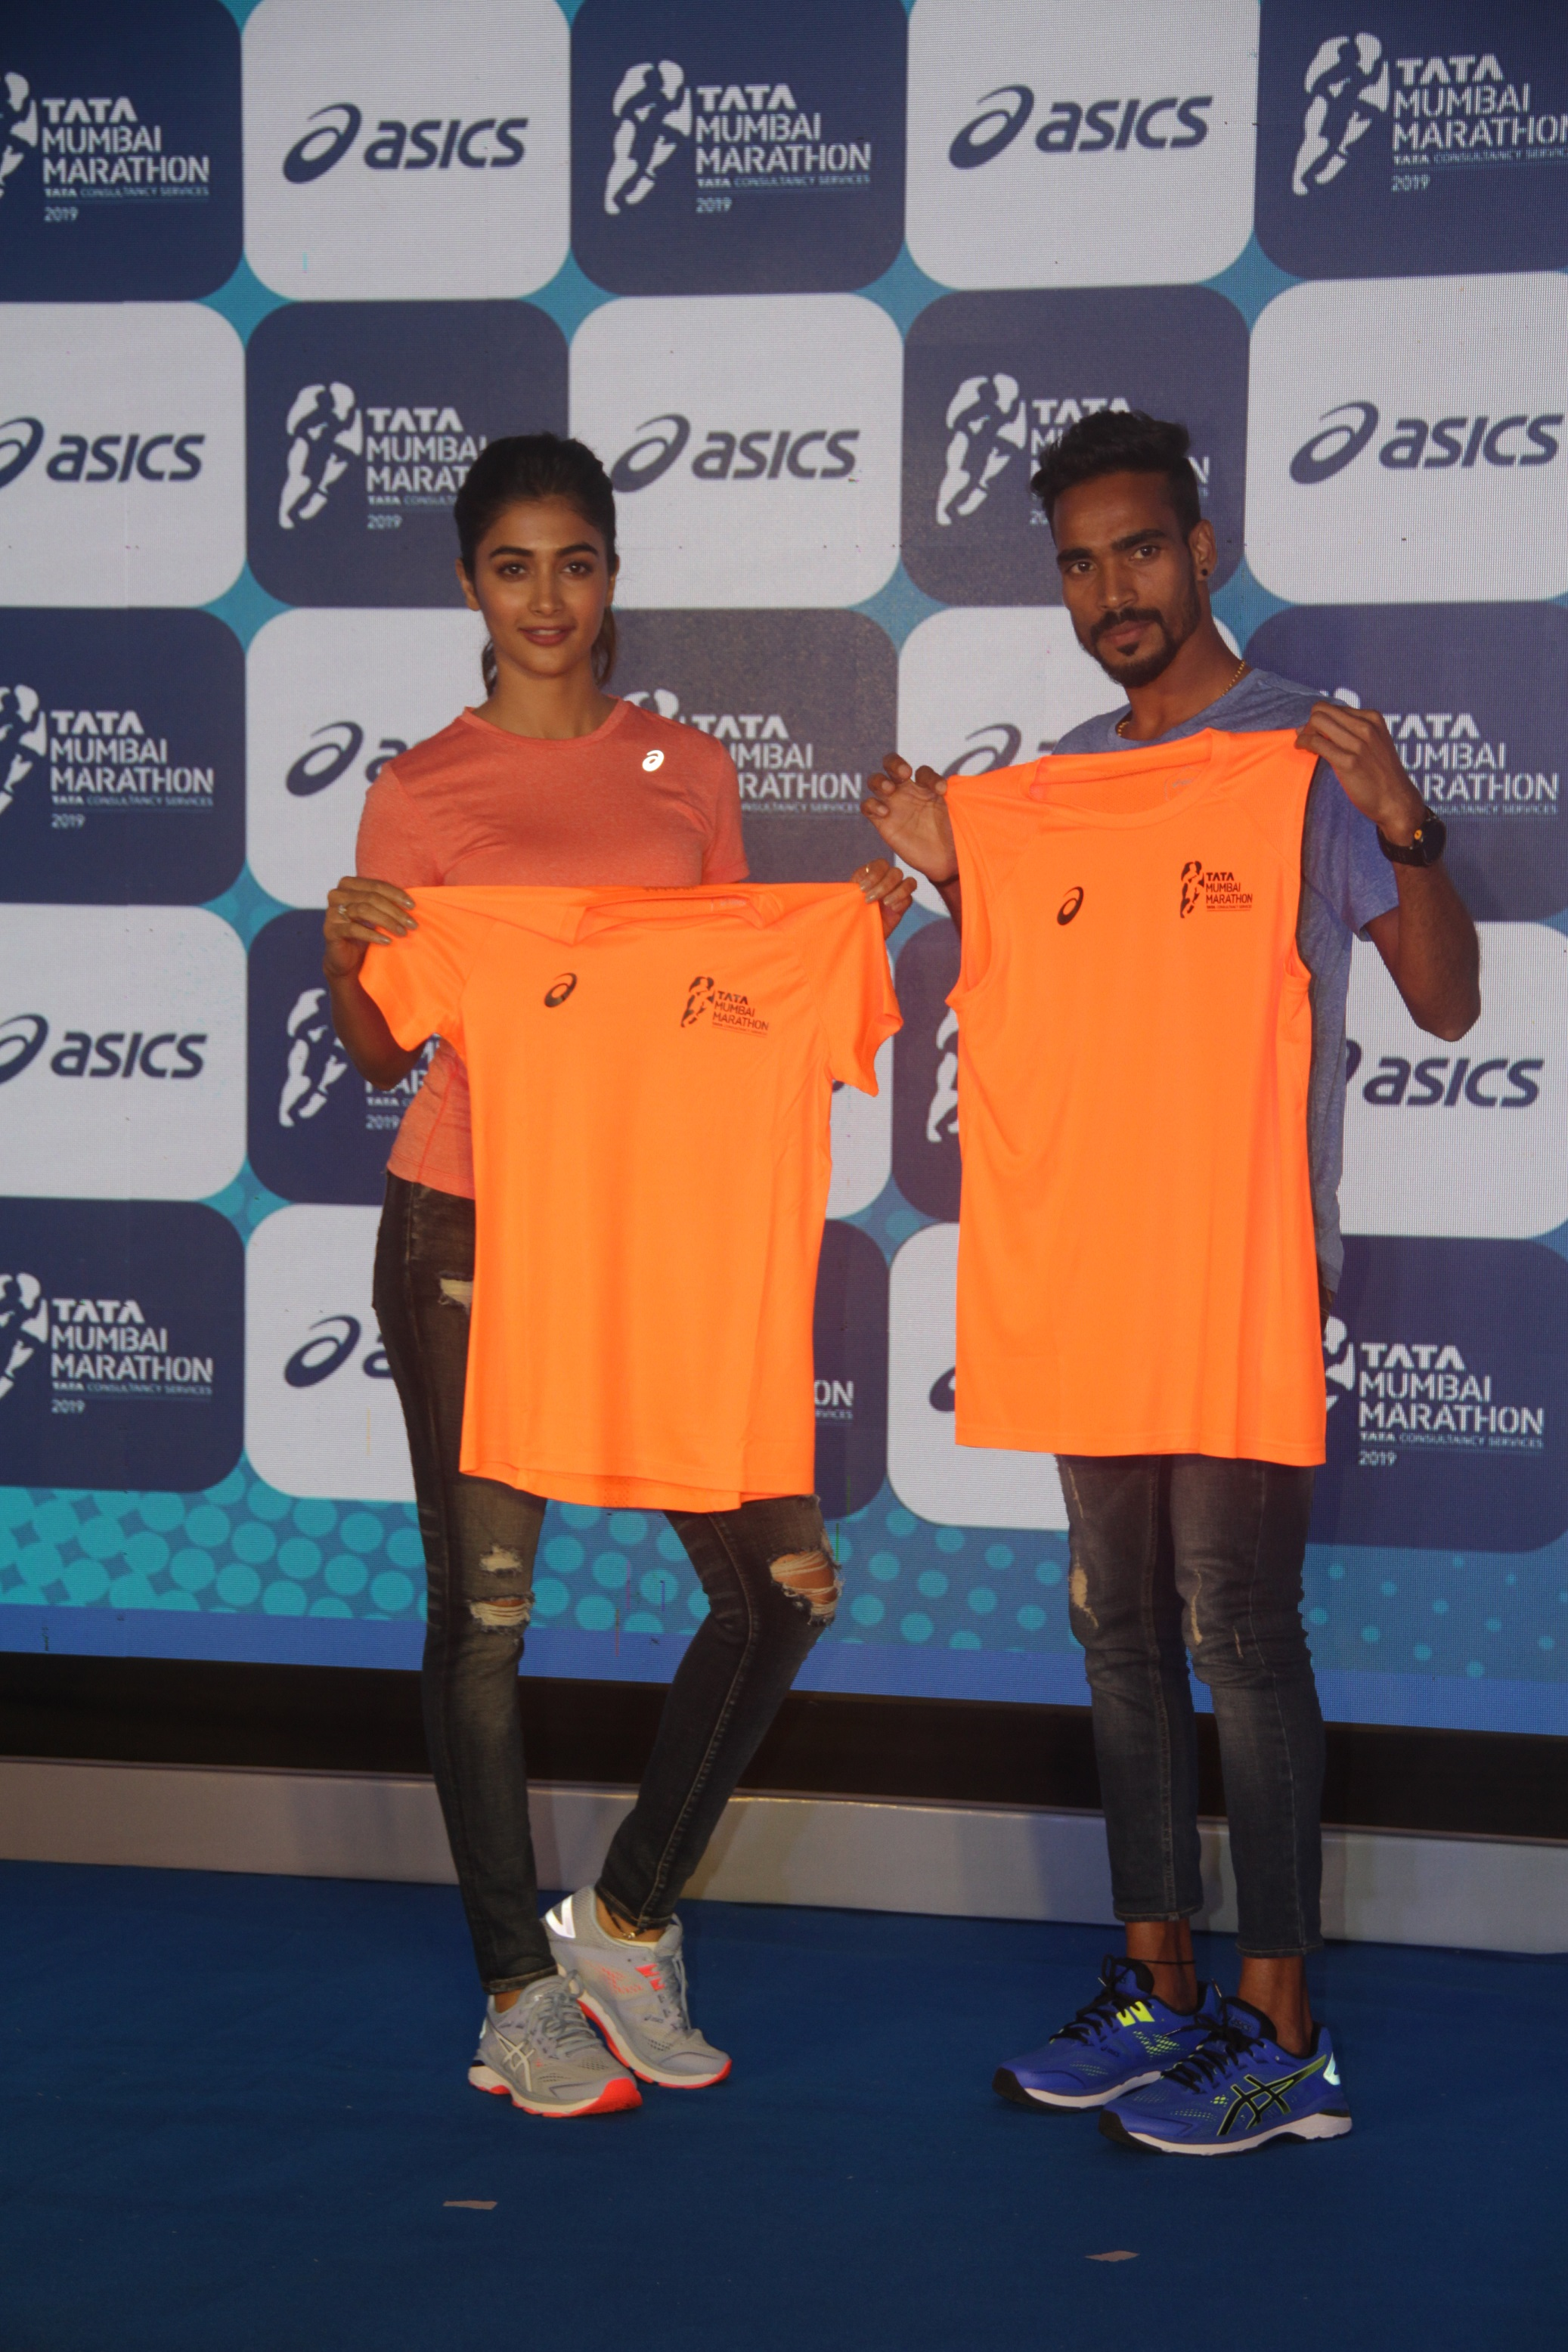 Pooja Hegde and Gopi T with the Marathon Tee